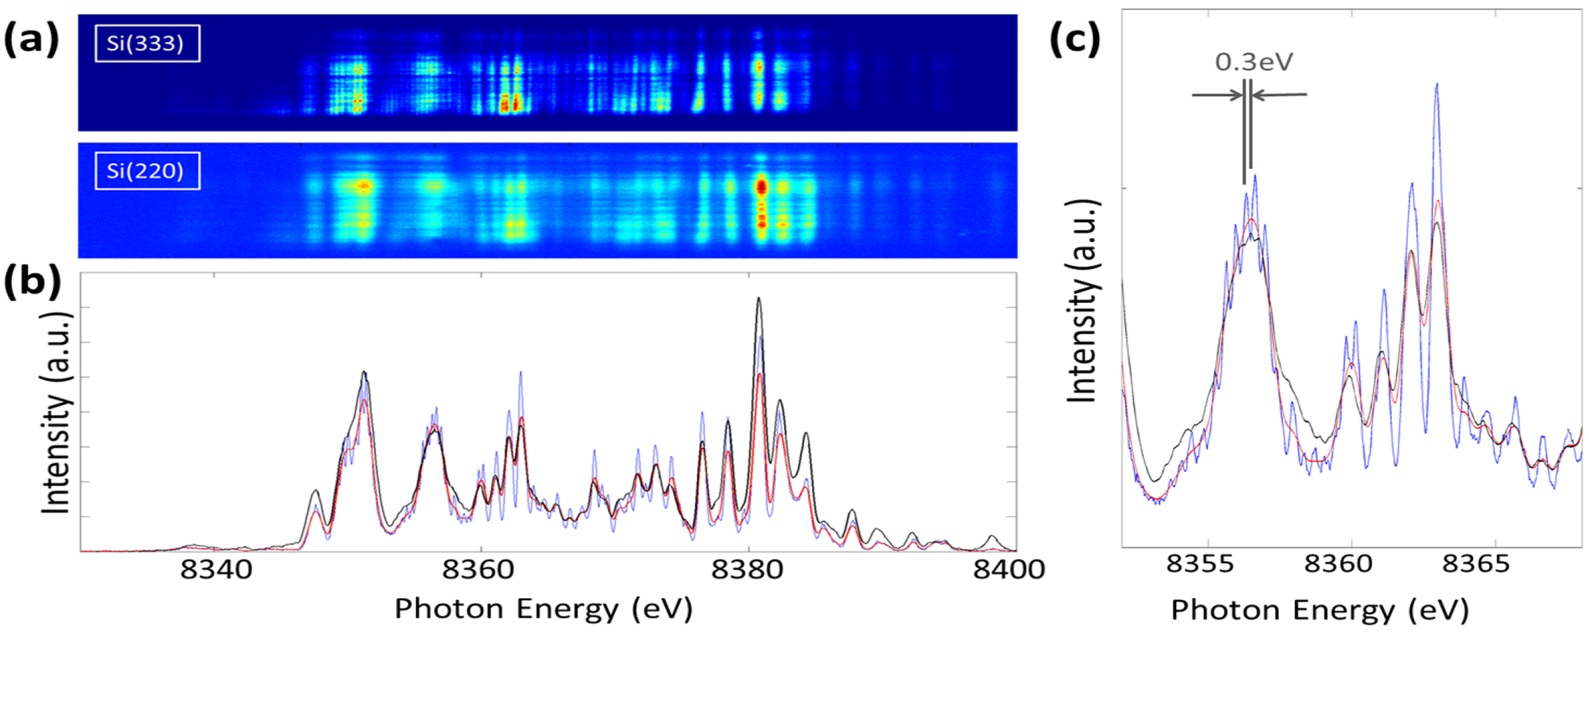 Figure 4: Comparison of single-shot spectra from the diffracted beam and the direct beam. (a) 2D images as recorded on the detectors, from the Si(333) (diffracted beam), and the Si(220) (direct beam) spectra. (b) Projections of the same shot from the Si(333) spectrometer (blue), the Si(333) spectrum after smoothening (red), and from the Si(220) spectrometer (black). The spectrum from the Si(220) reflection has similar overall features and intensity distribution. (c) Detail of the same spectra. SASE spikes separated by ∼0.3 eV were clearly resolved by the Si(333) spectrometer.